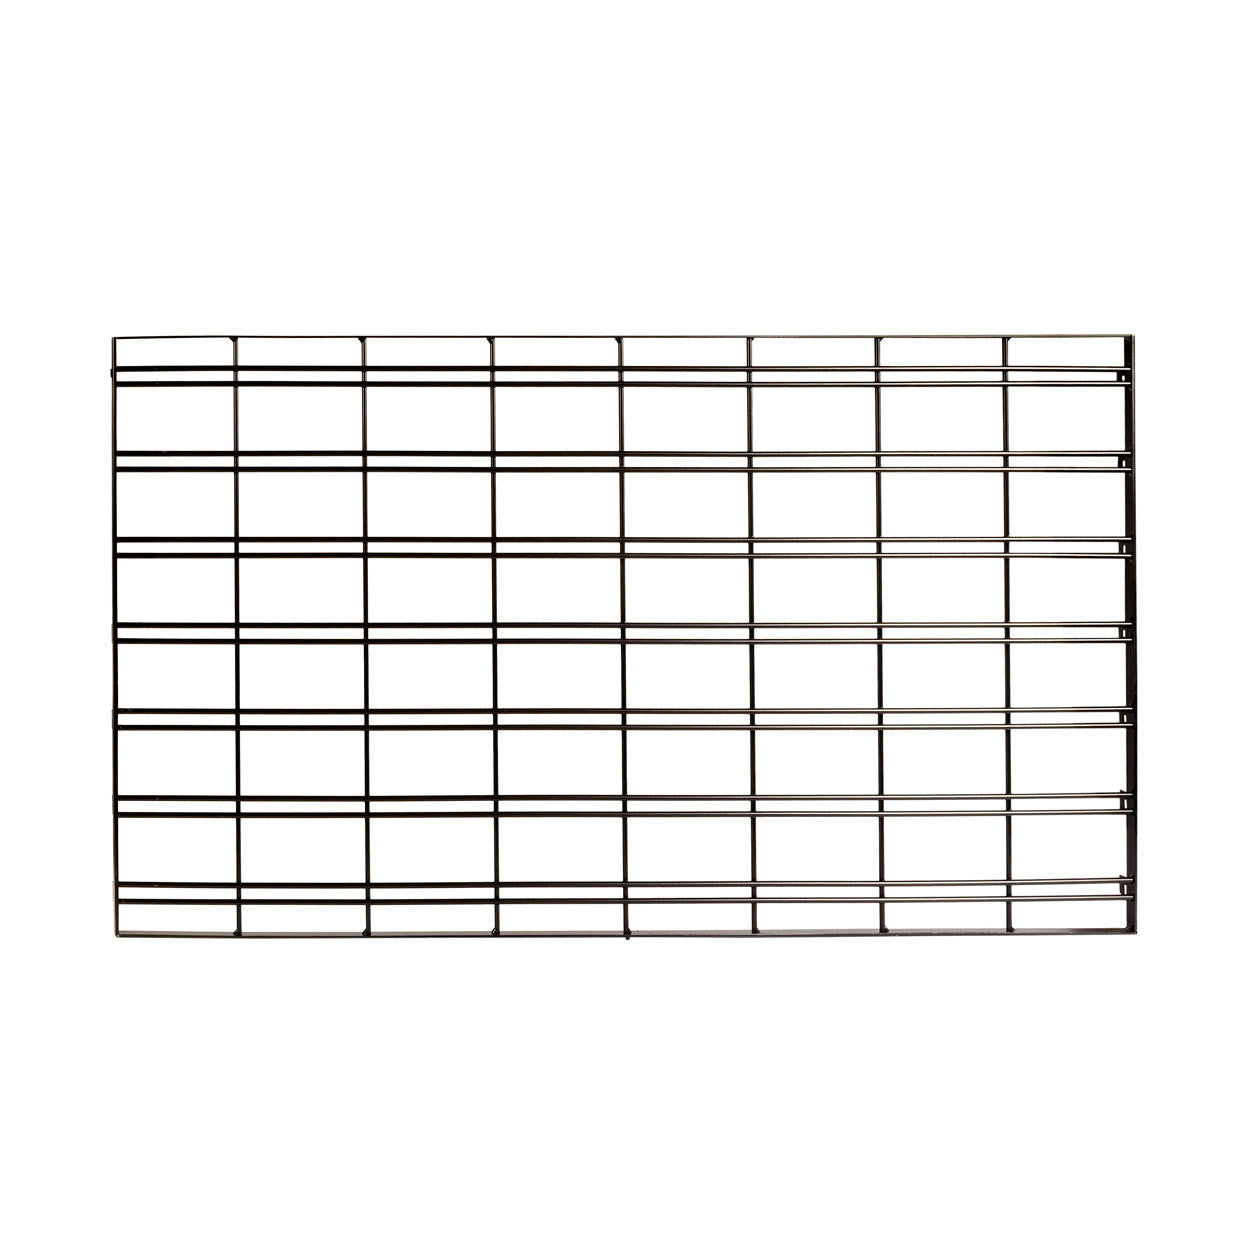 MAXe slatwall mesh panel 560 H - 1200 mm bay  1190 W x 18 mm Thick E8212BK